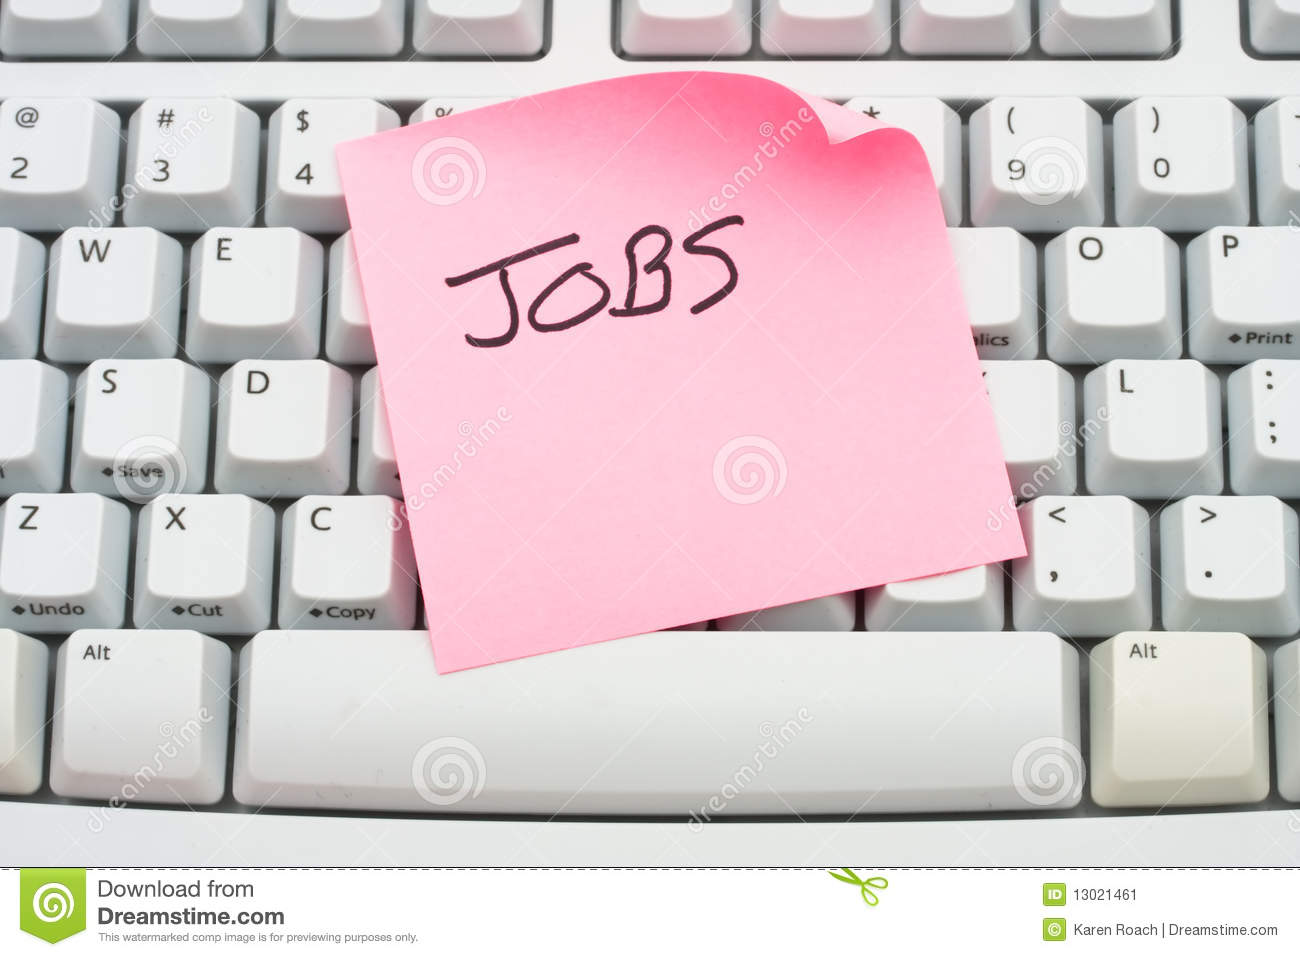 new online apply clipart clipart kid saying jobs sitting on a computer keyboard apply for jobs online